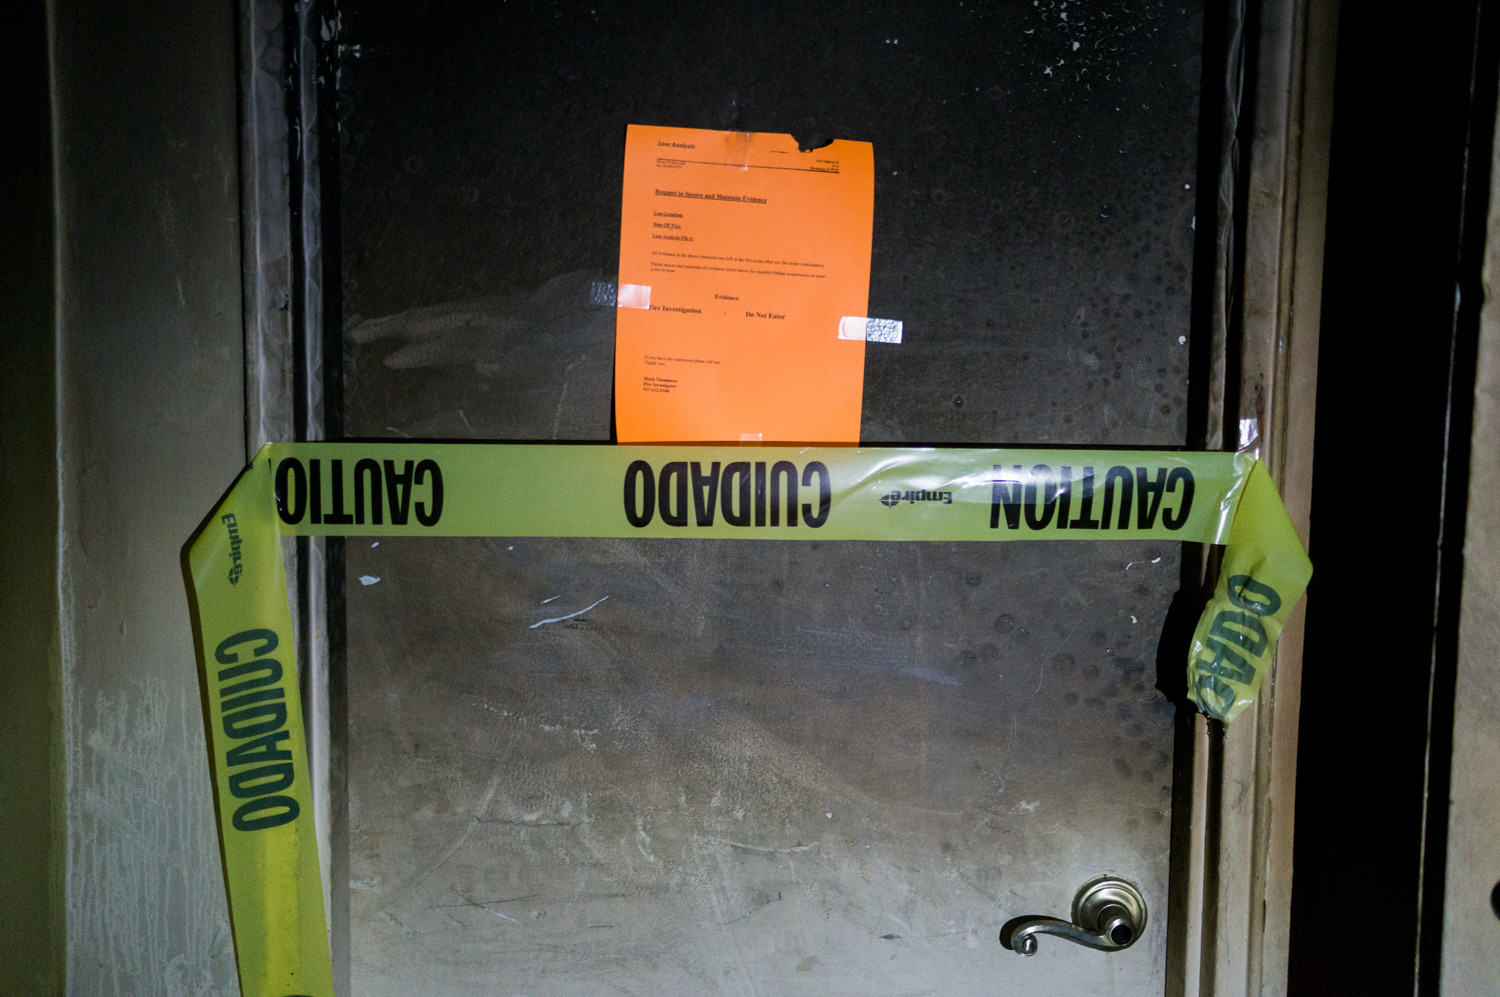 Caution tape cordons off the room where the fire started in Ana Anderson's apartment at 6035 Broadway on Jan. 6.